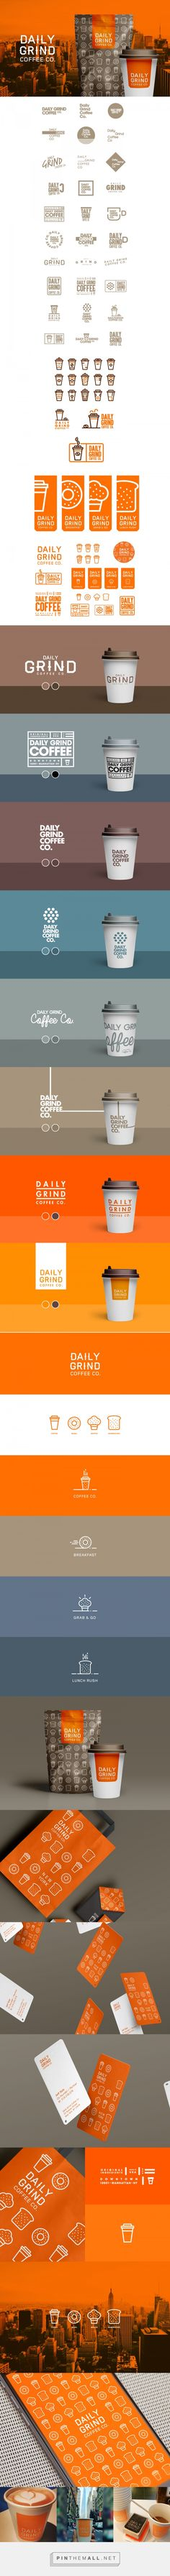 Daily Grind Coffee Co. by Studio—JQ .